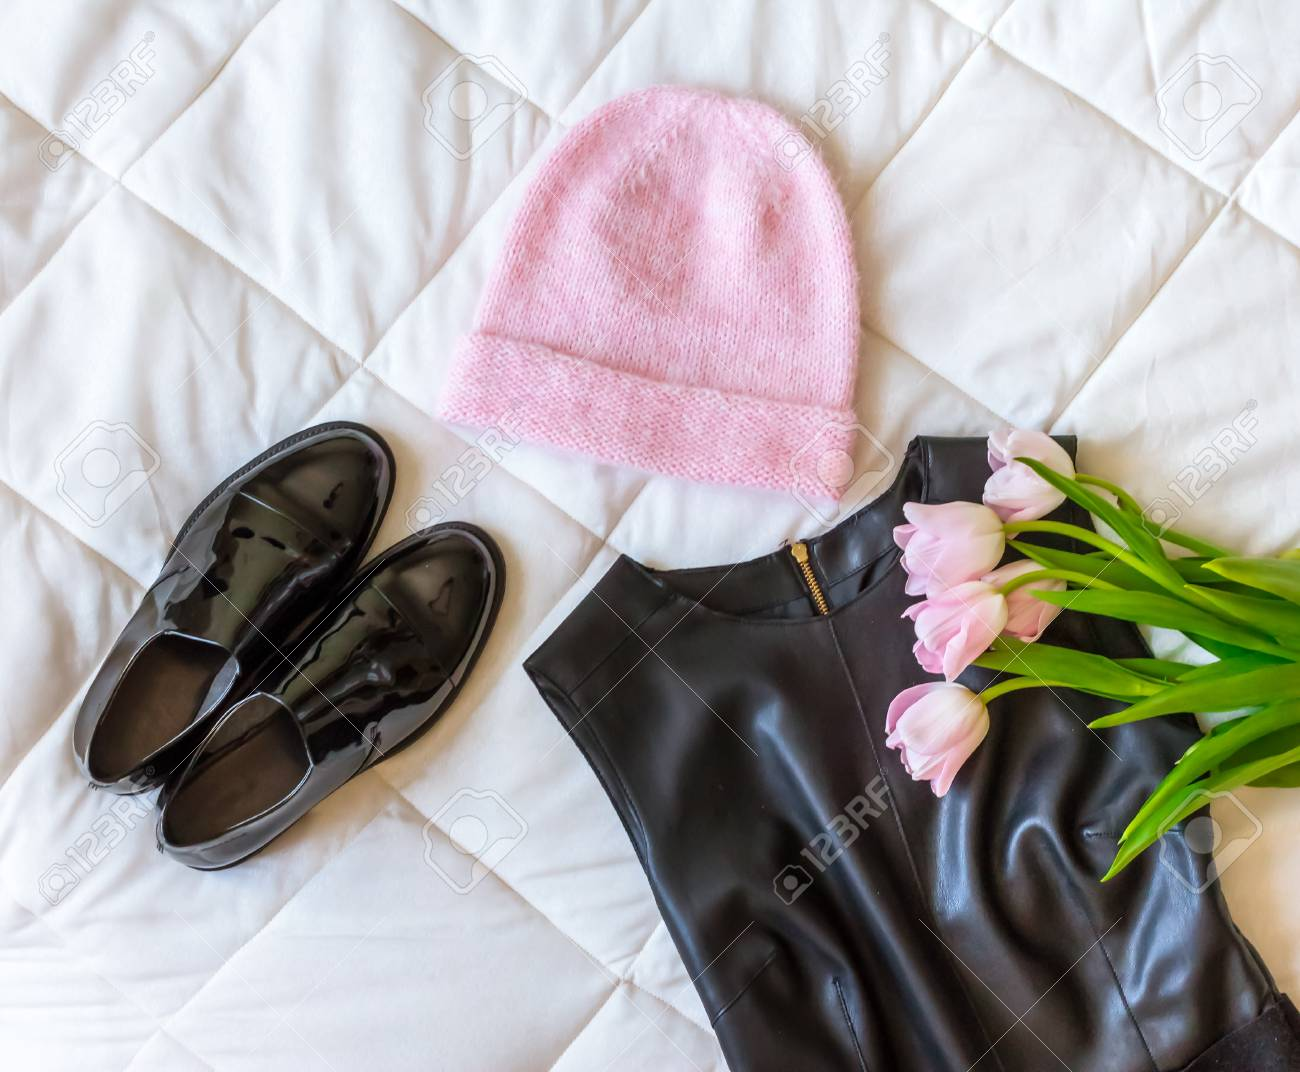 bf5d9a2e540a95 Pink hat, black leather dress, black lacquered shoes and a fresh pink  tulips Stock